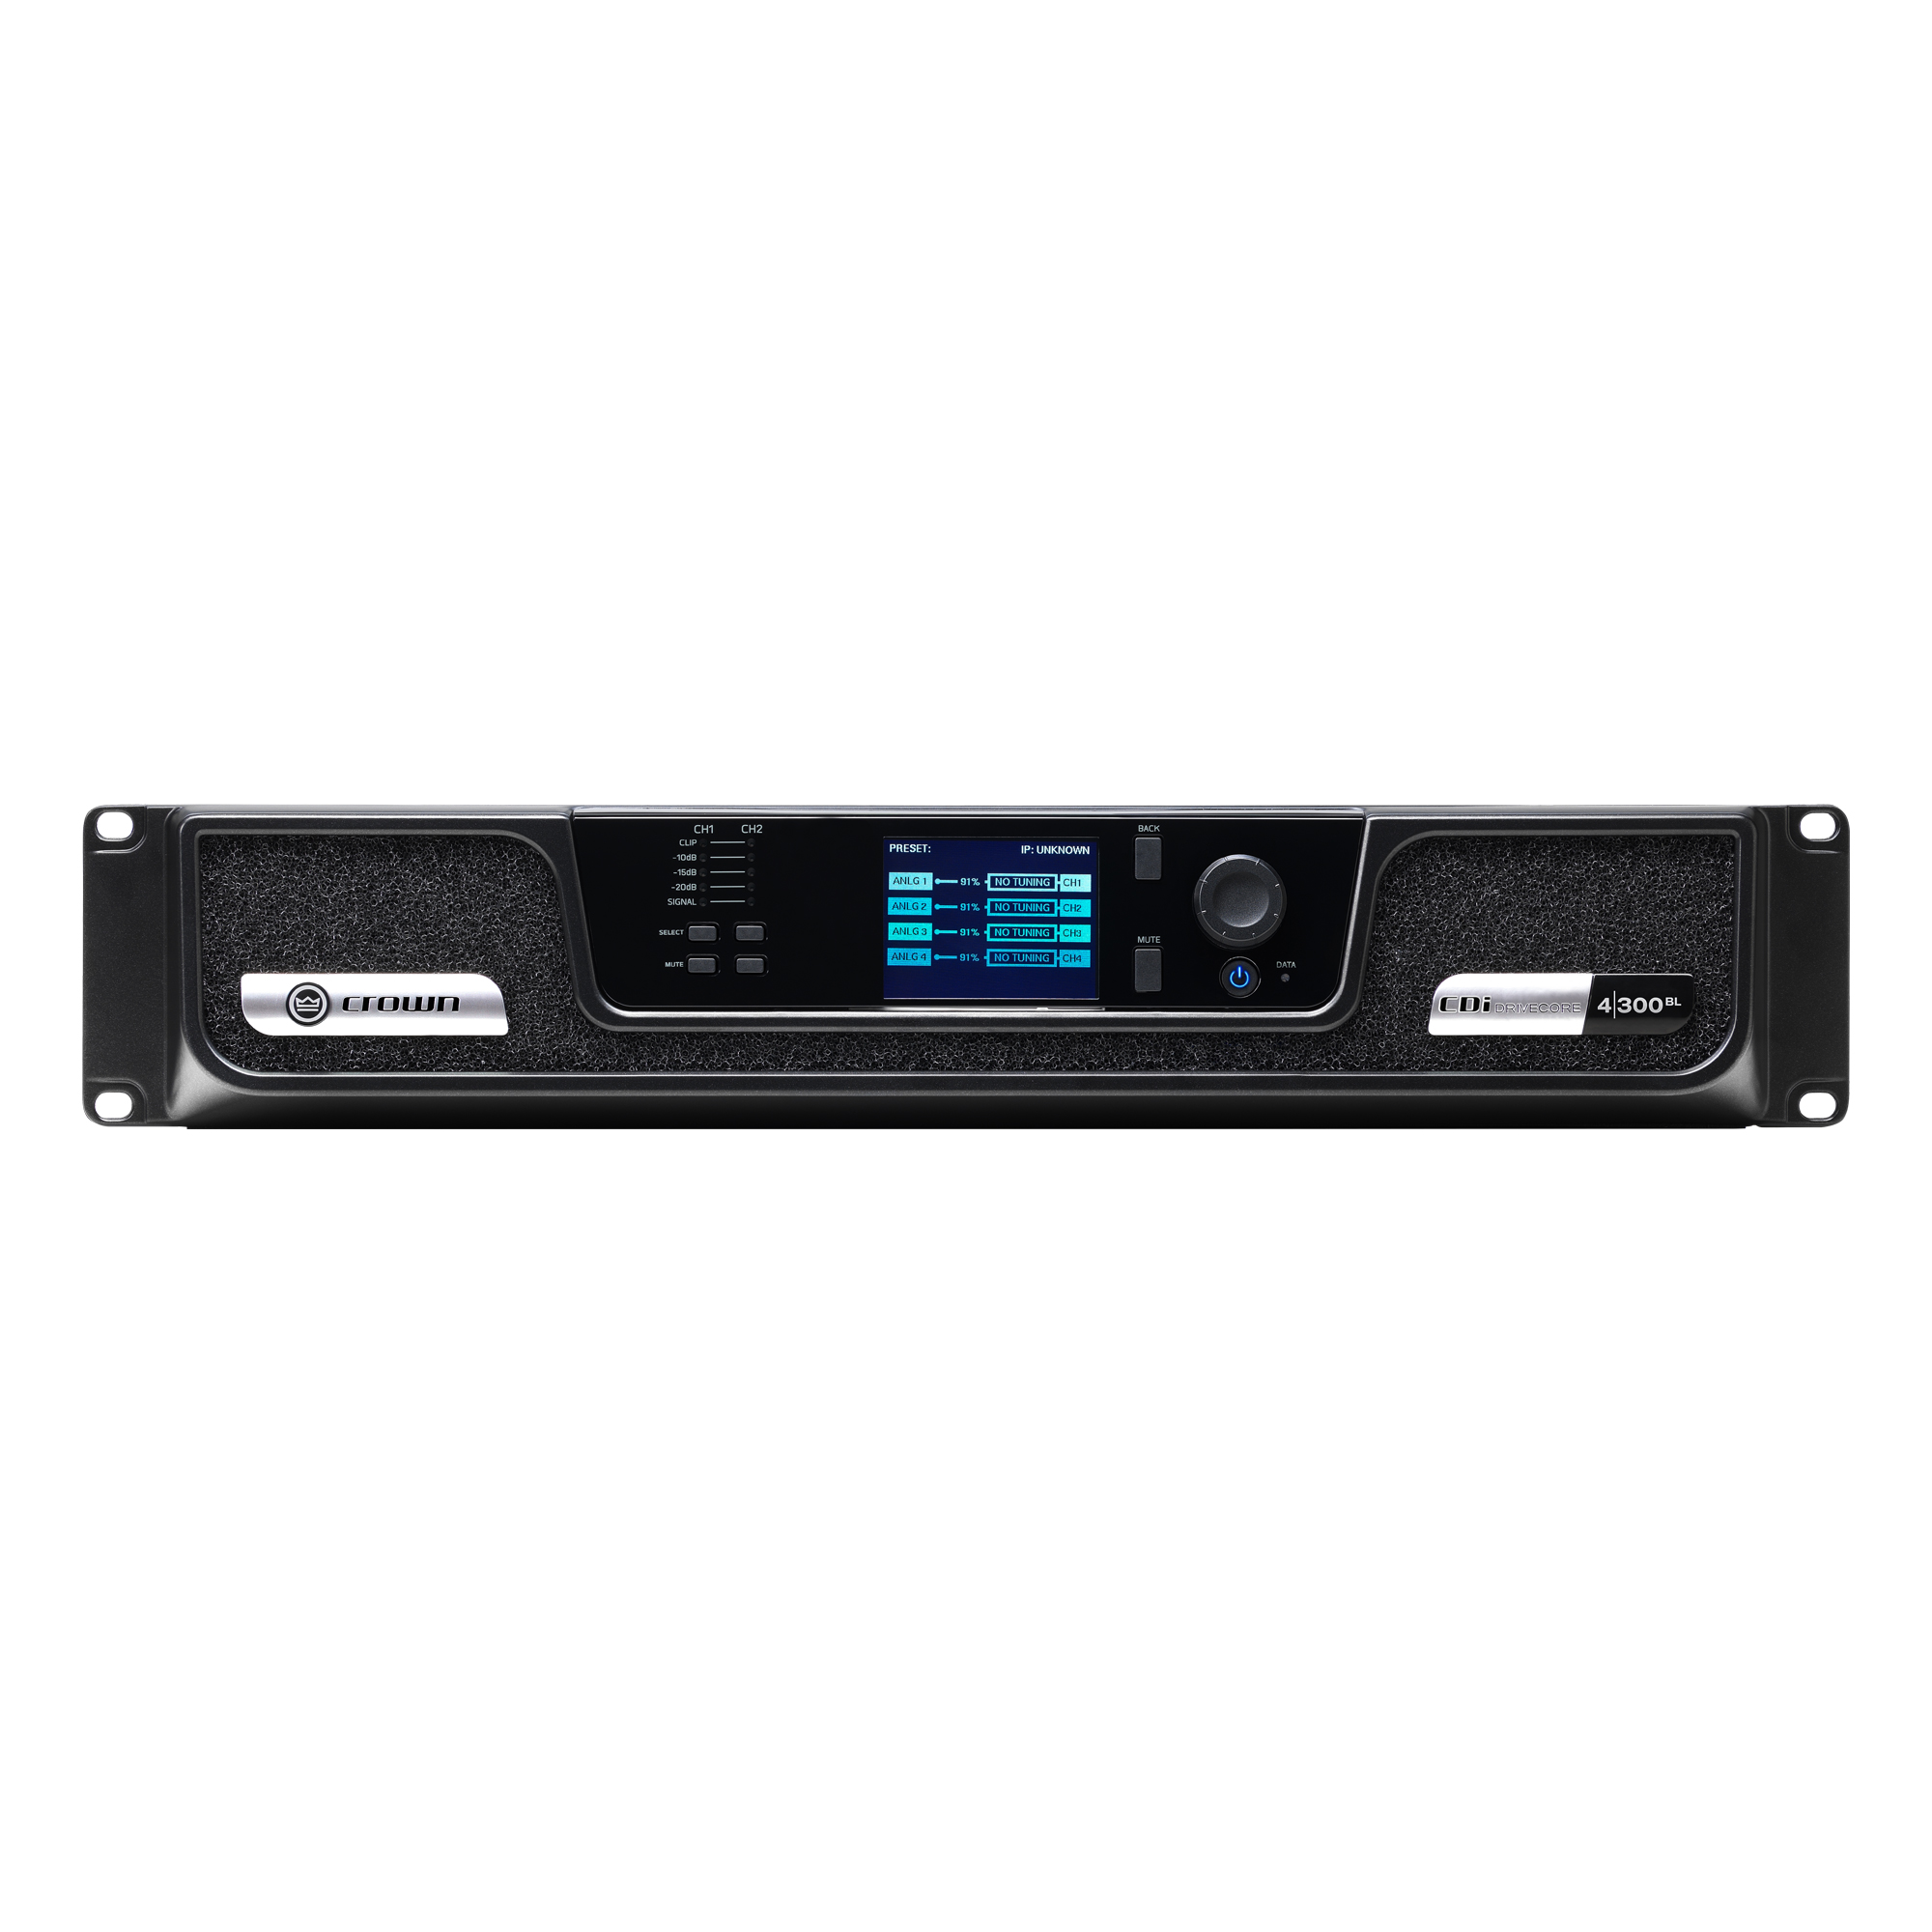 Analog + BLU link input, 4 channel, 300W per output channel, Amplifier